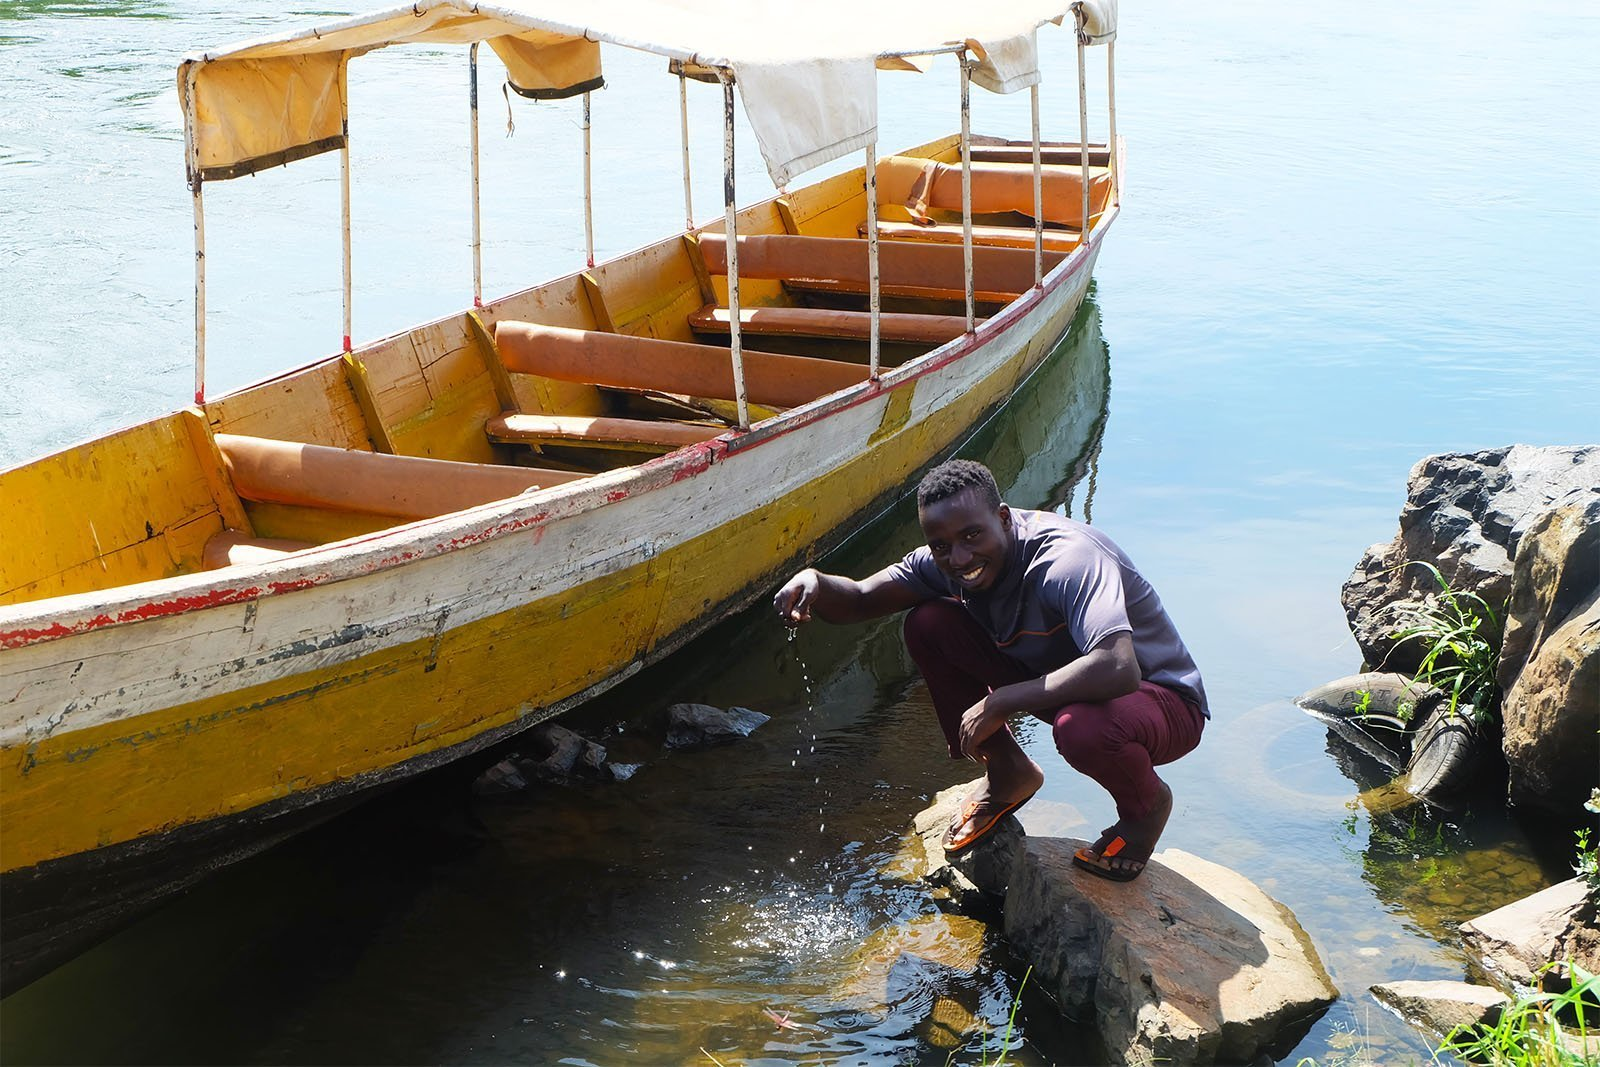 First Time in Uganda: What to Expect, Itinerary, Expenses, and Travel Tips